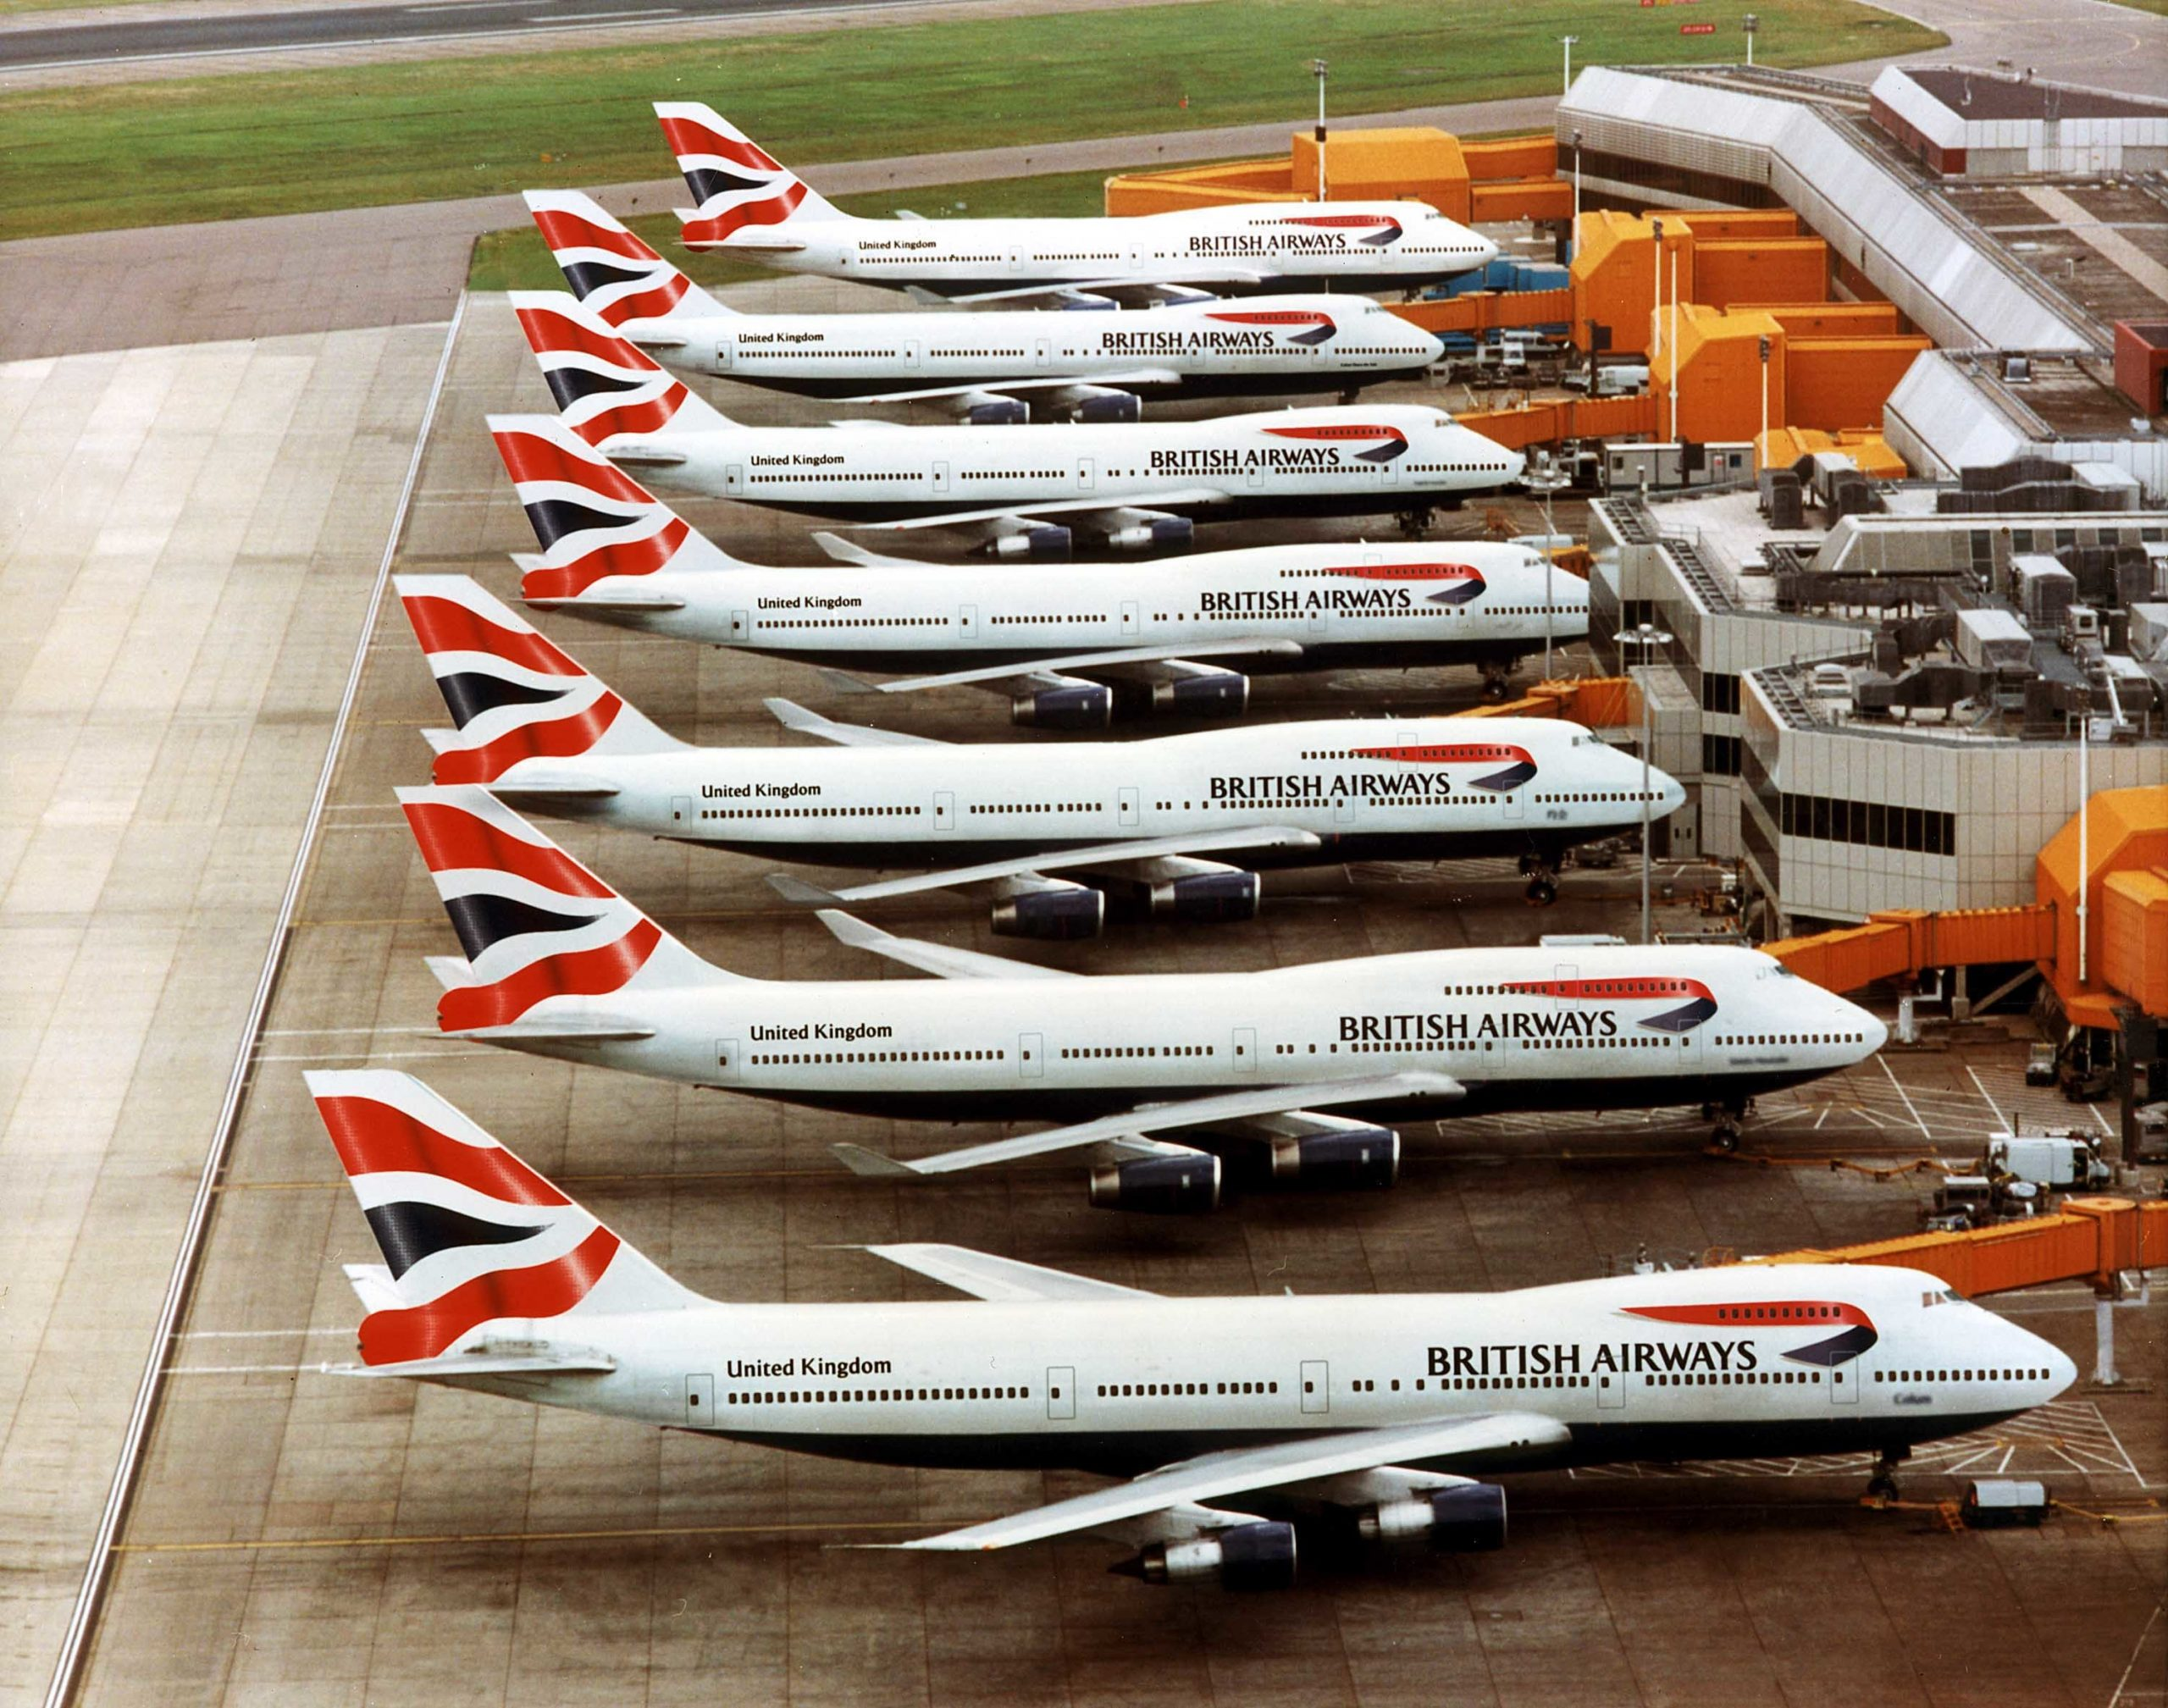 British Airways To Retire Entire Boeing 747 Fleet Immediately